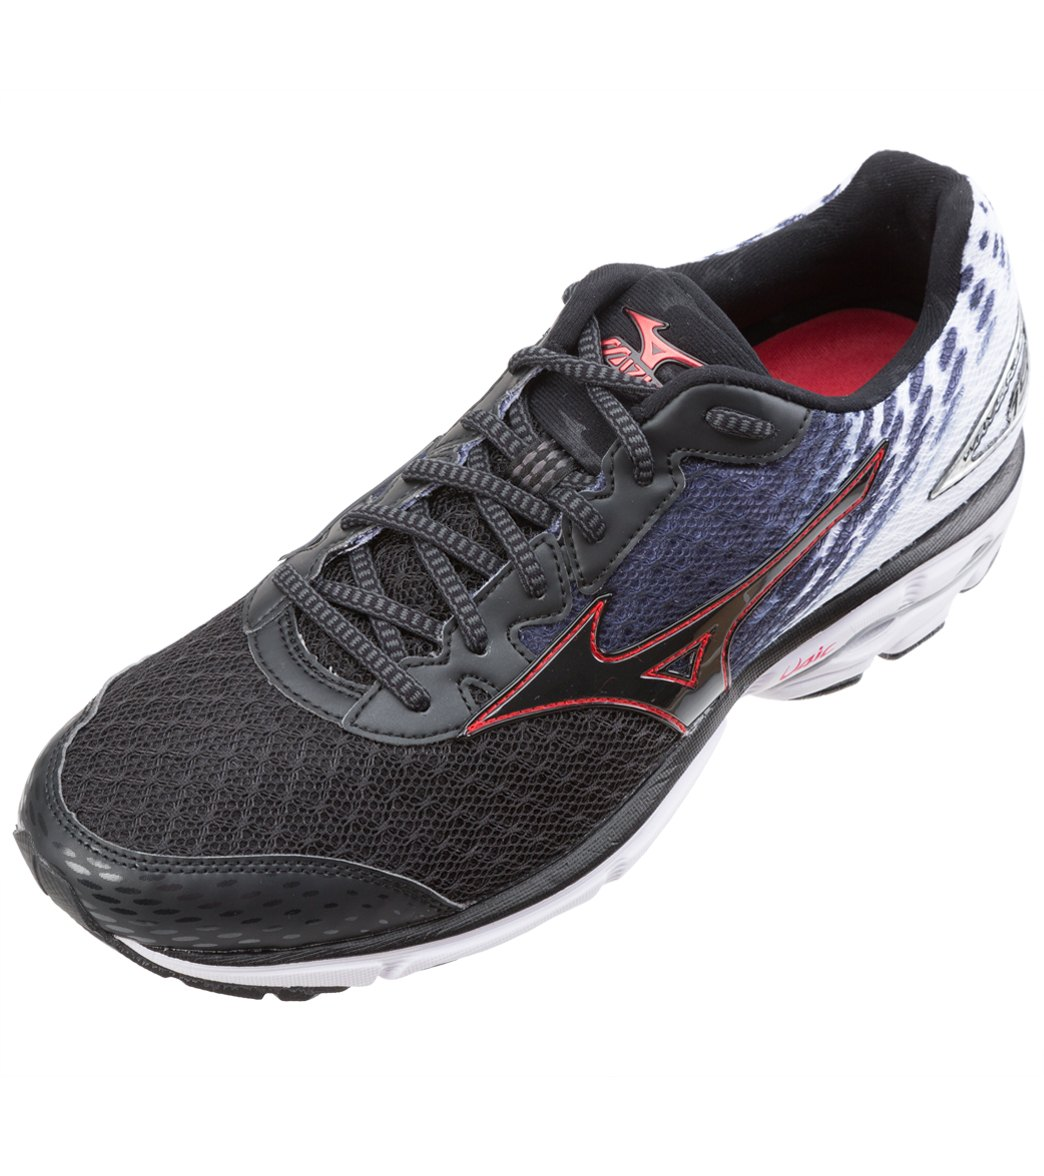 Mizuno Men s Wave Rider 19 Running Shoes at SwimOutlet.com - Free Shipping 4d48756878